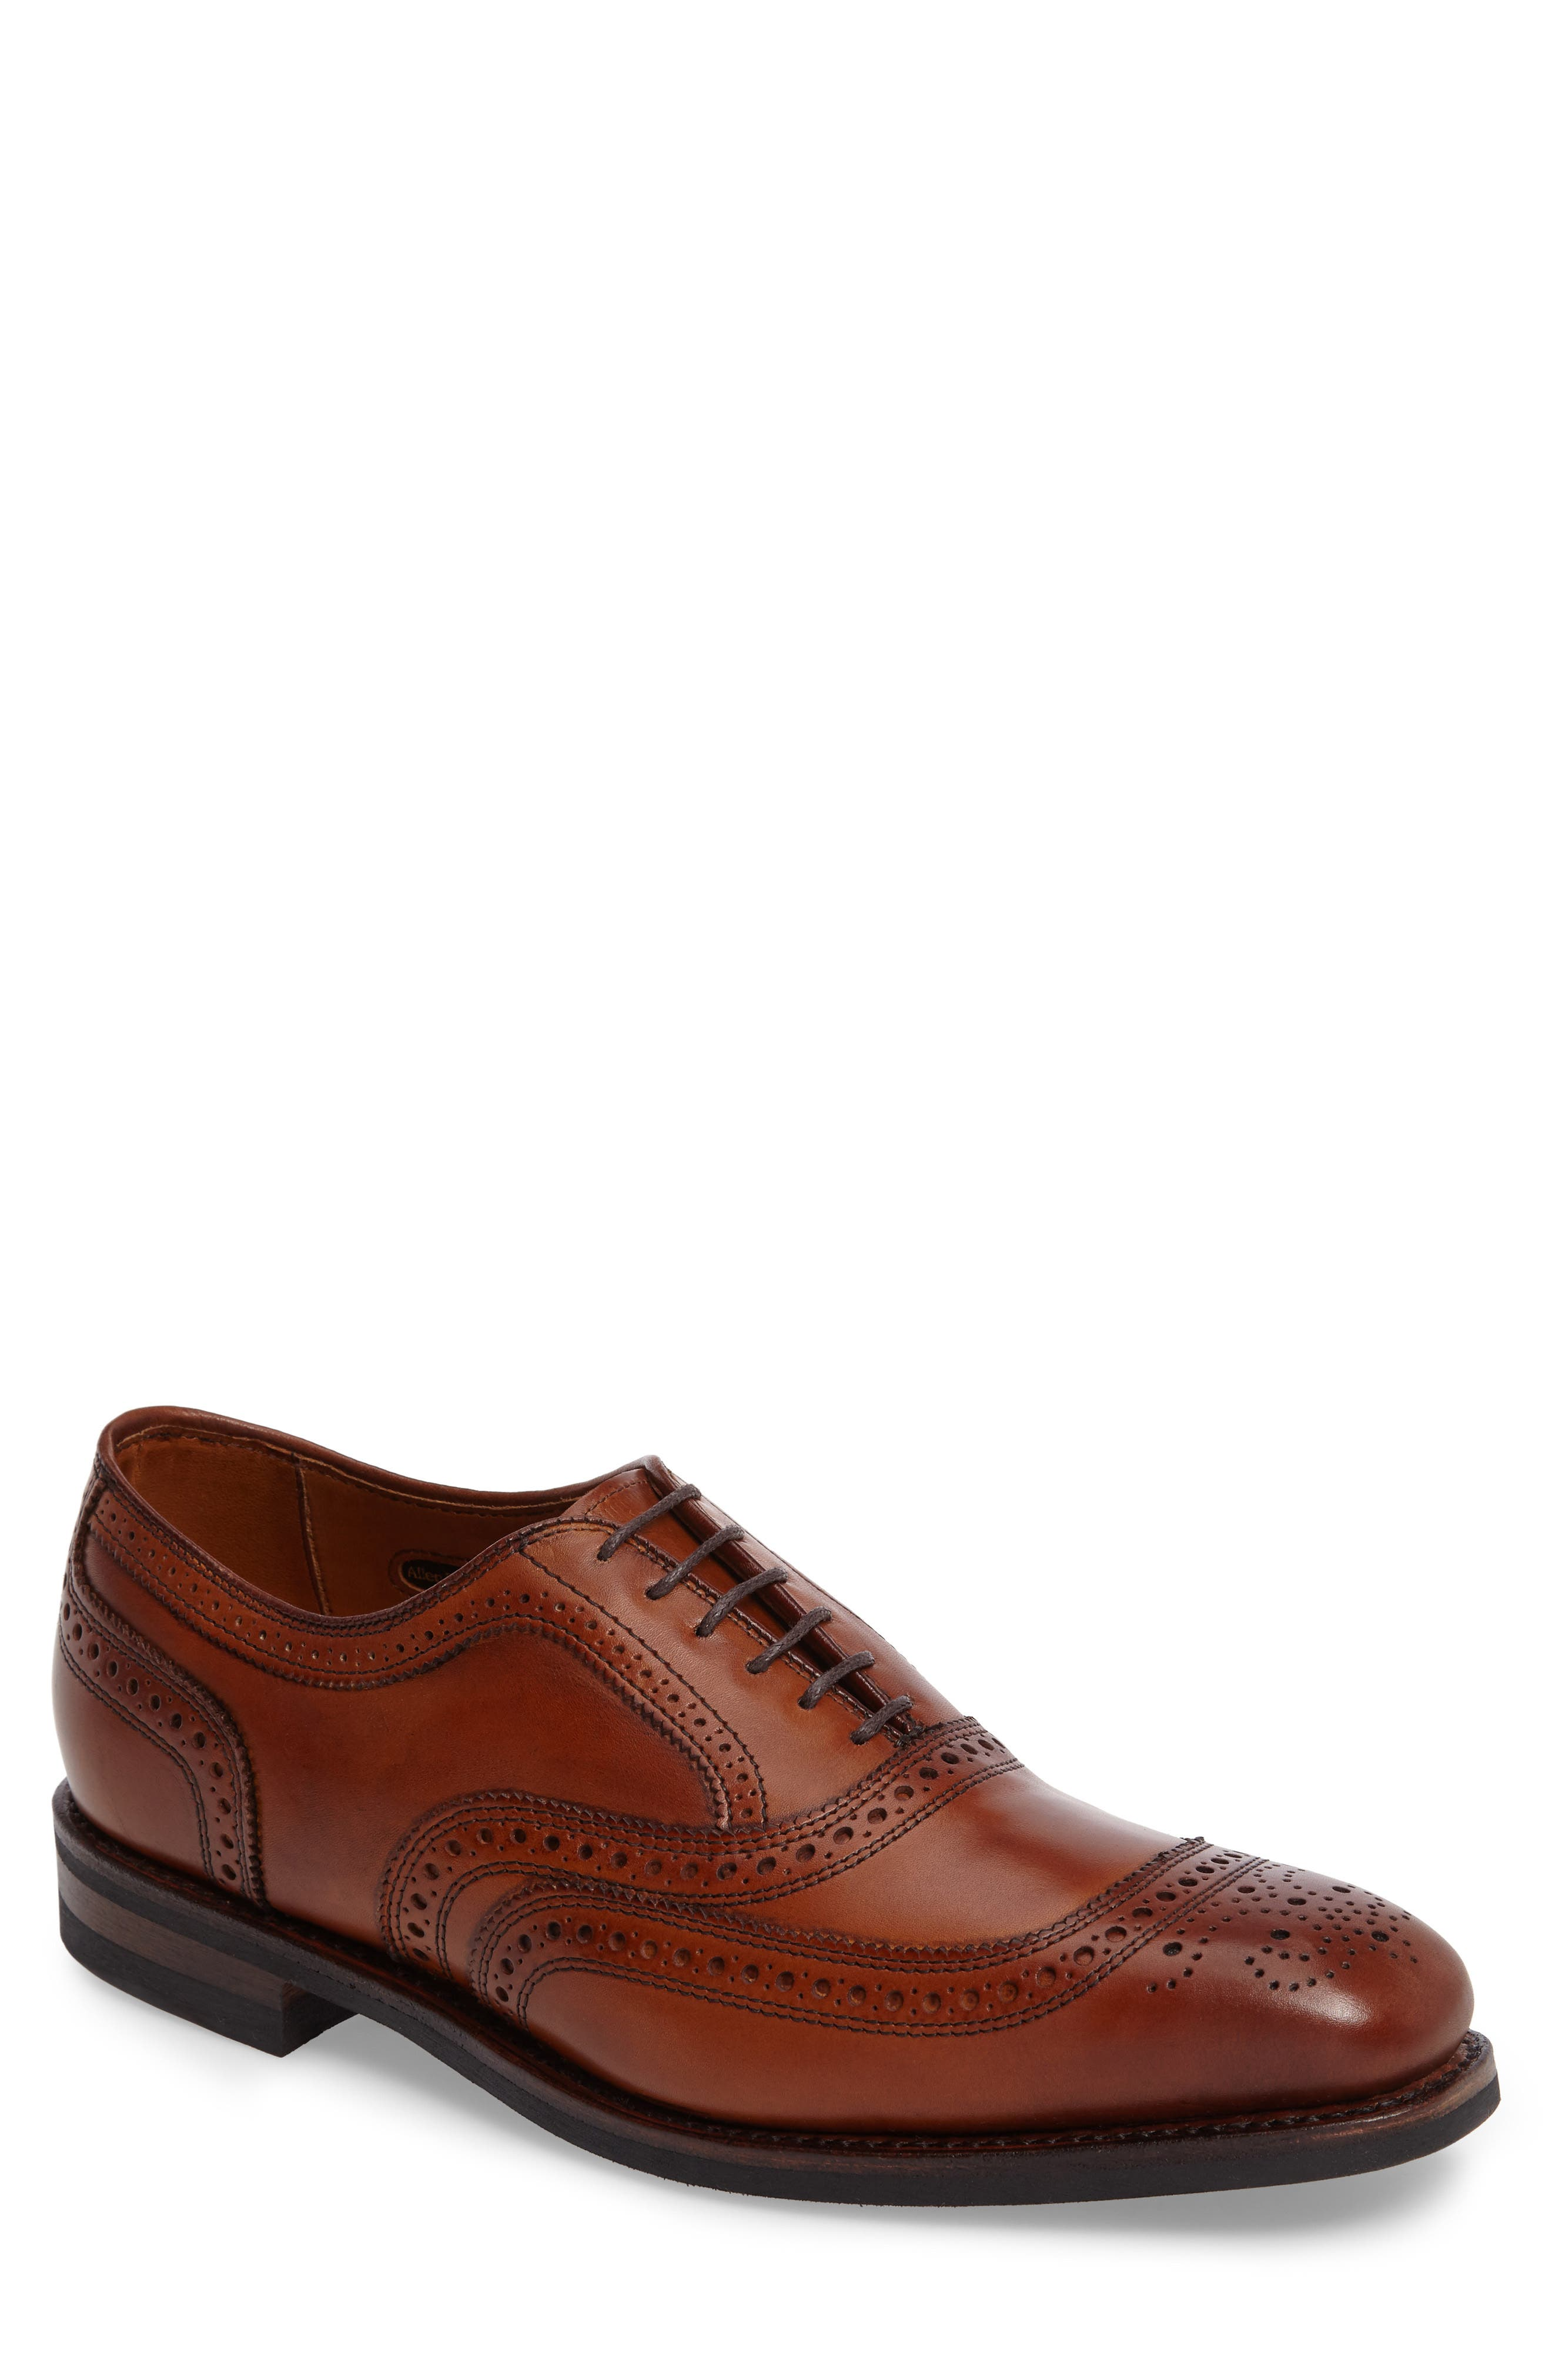 Main Image - Allen Edmonds 'University' Wingtip (Men)